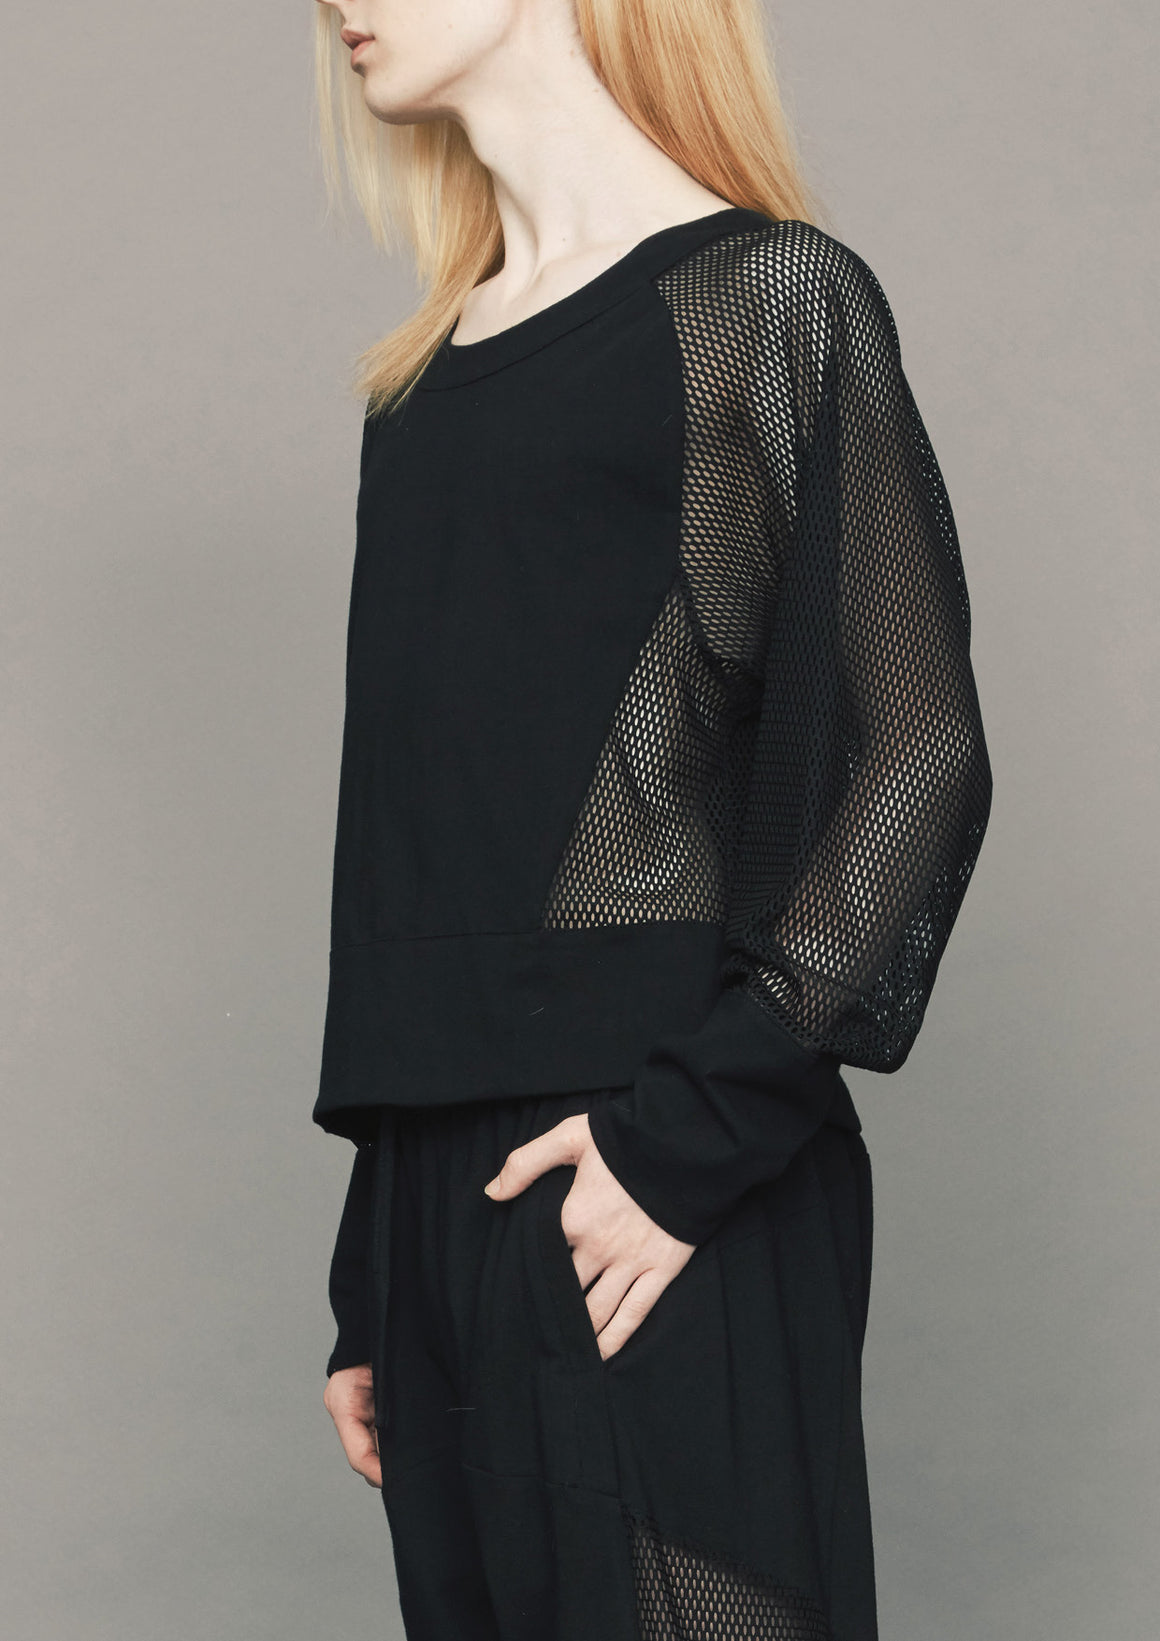 SUMMER SWEATER - AIRY MESH black